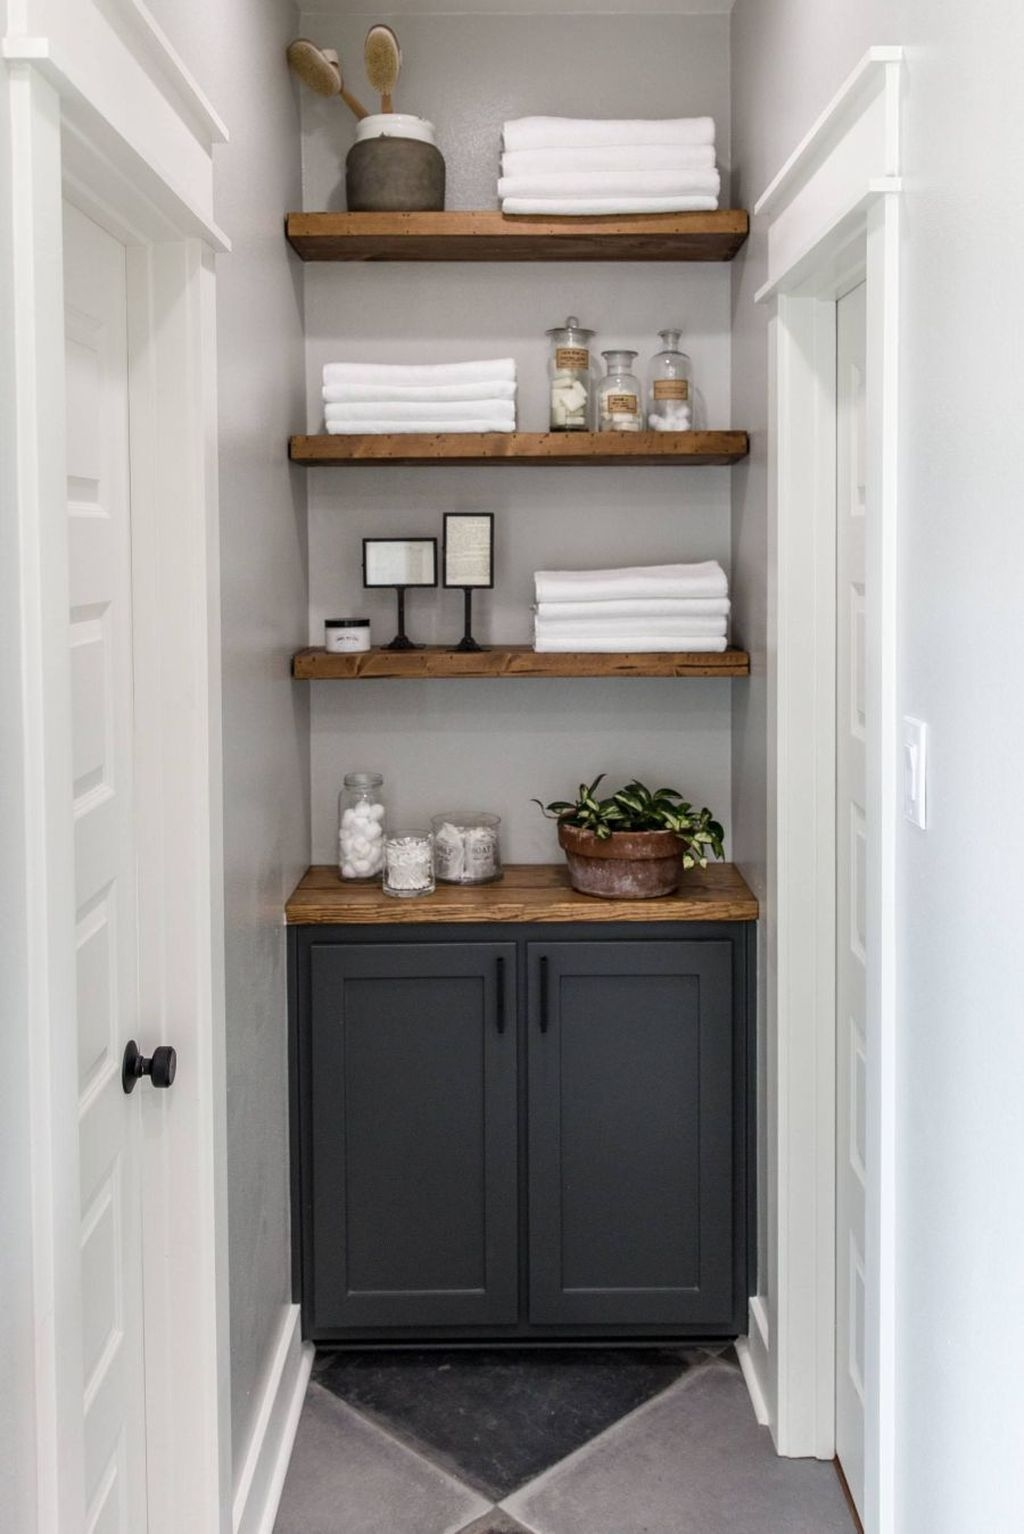 Awesome Hanging Bathroom Storage For Small Spaces 27